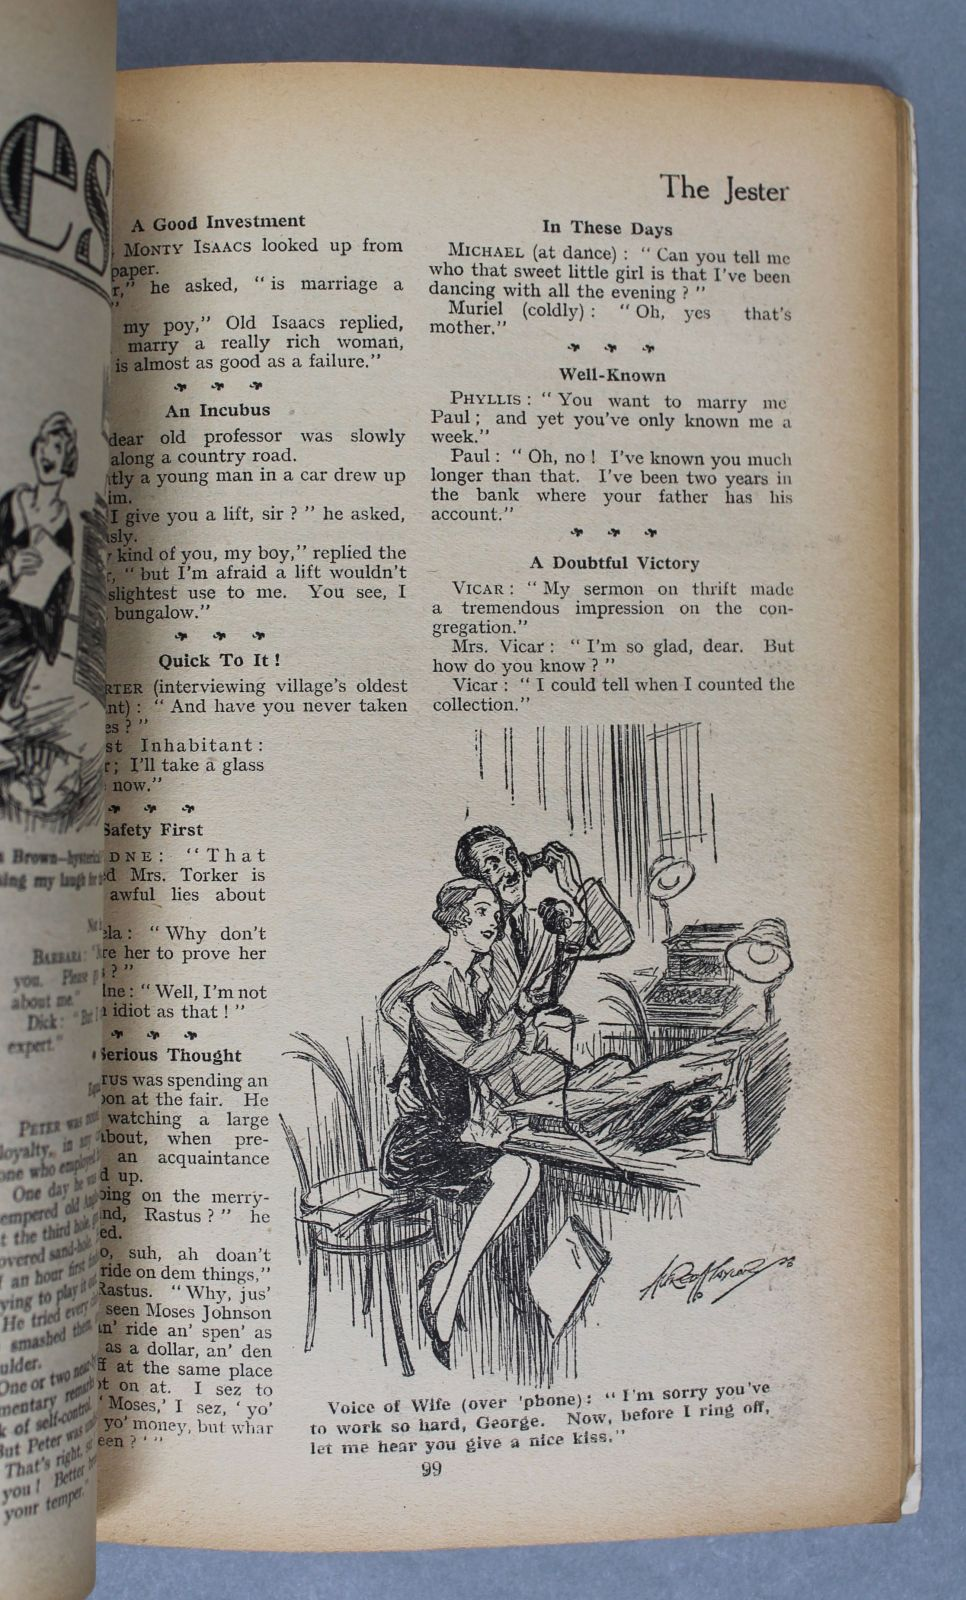 The inside page of an old magazine. It shows a small illustration amongst the text, showing a woman and a man speaking on an old-fashioned telephone.